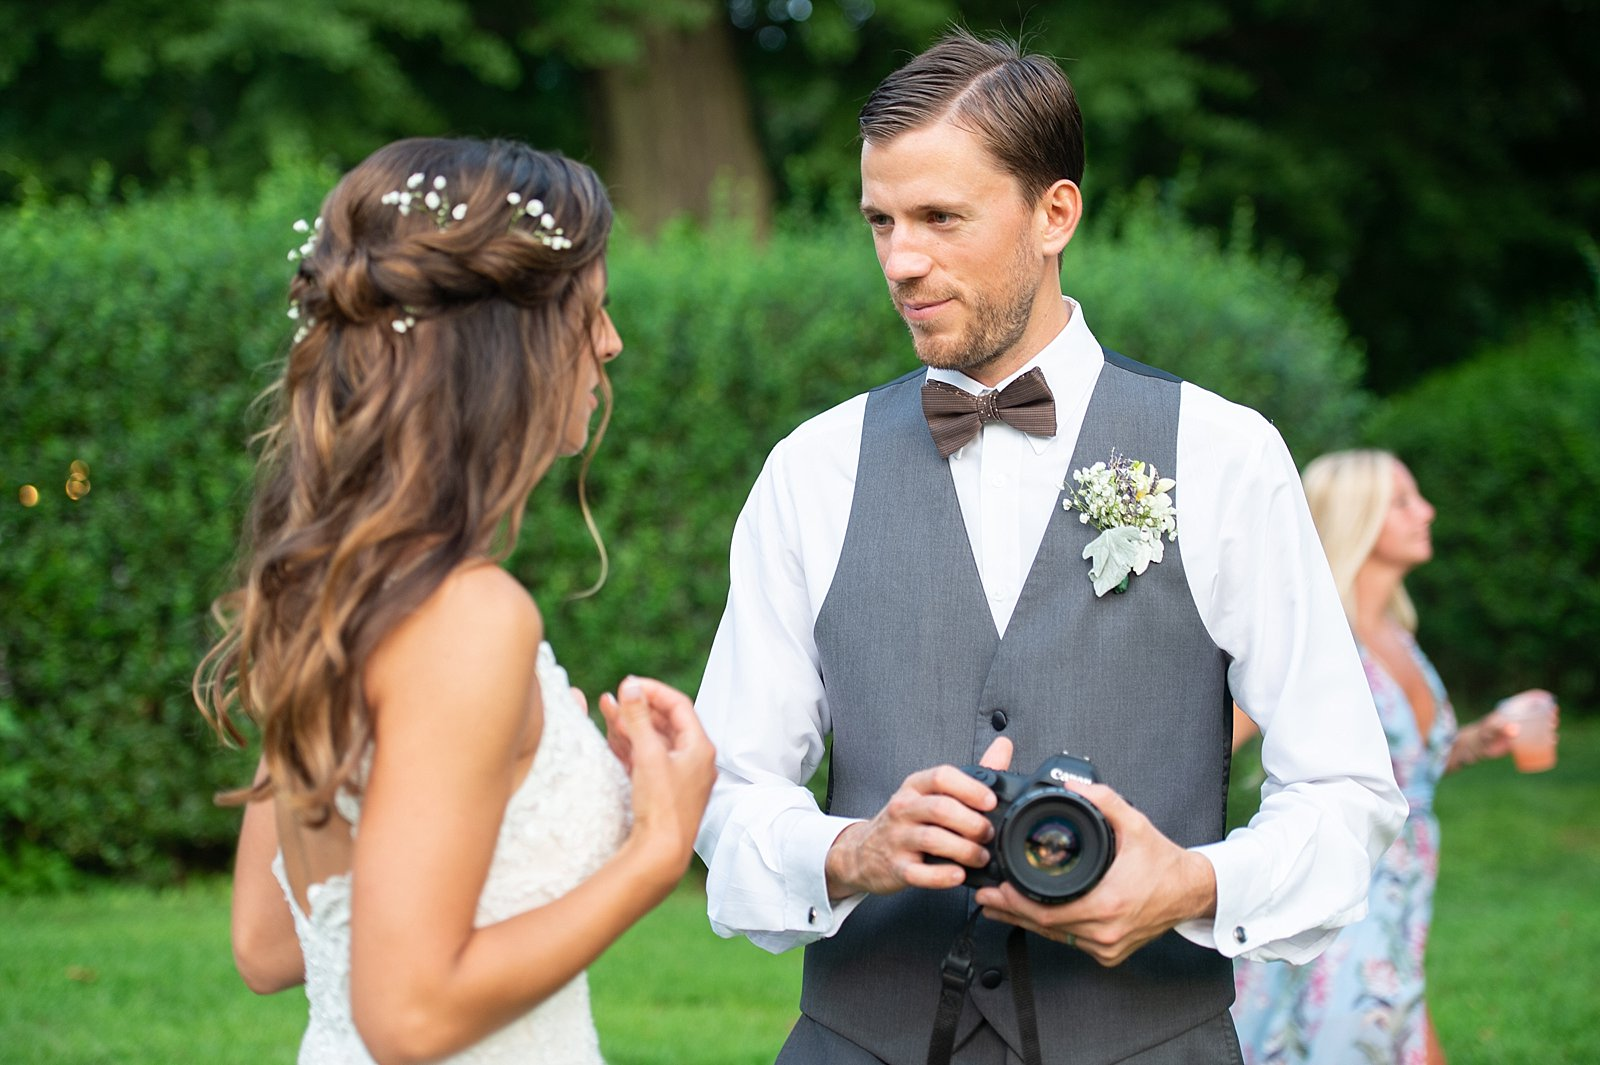 I don't trust just anyone to hold my camera, but I guess it's okay when the groom is a photographer too!